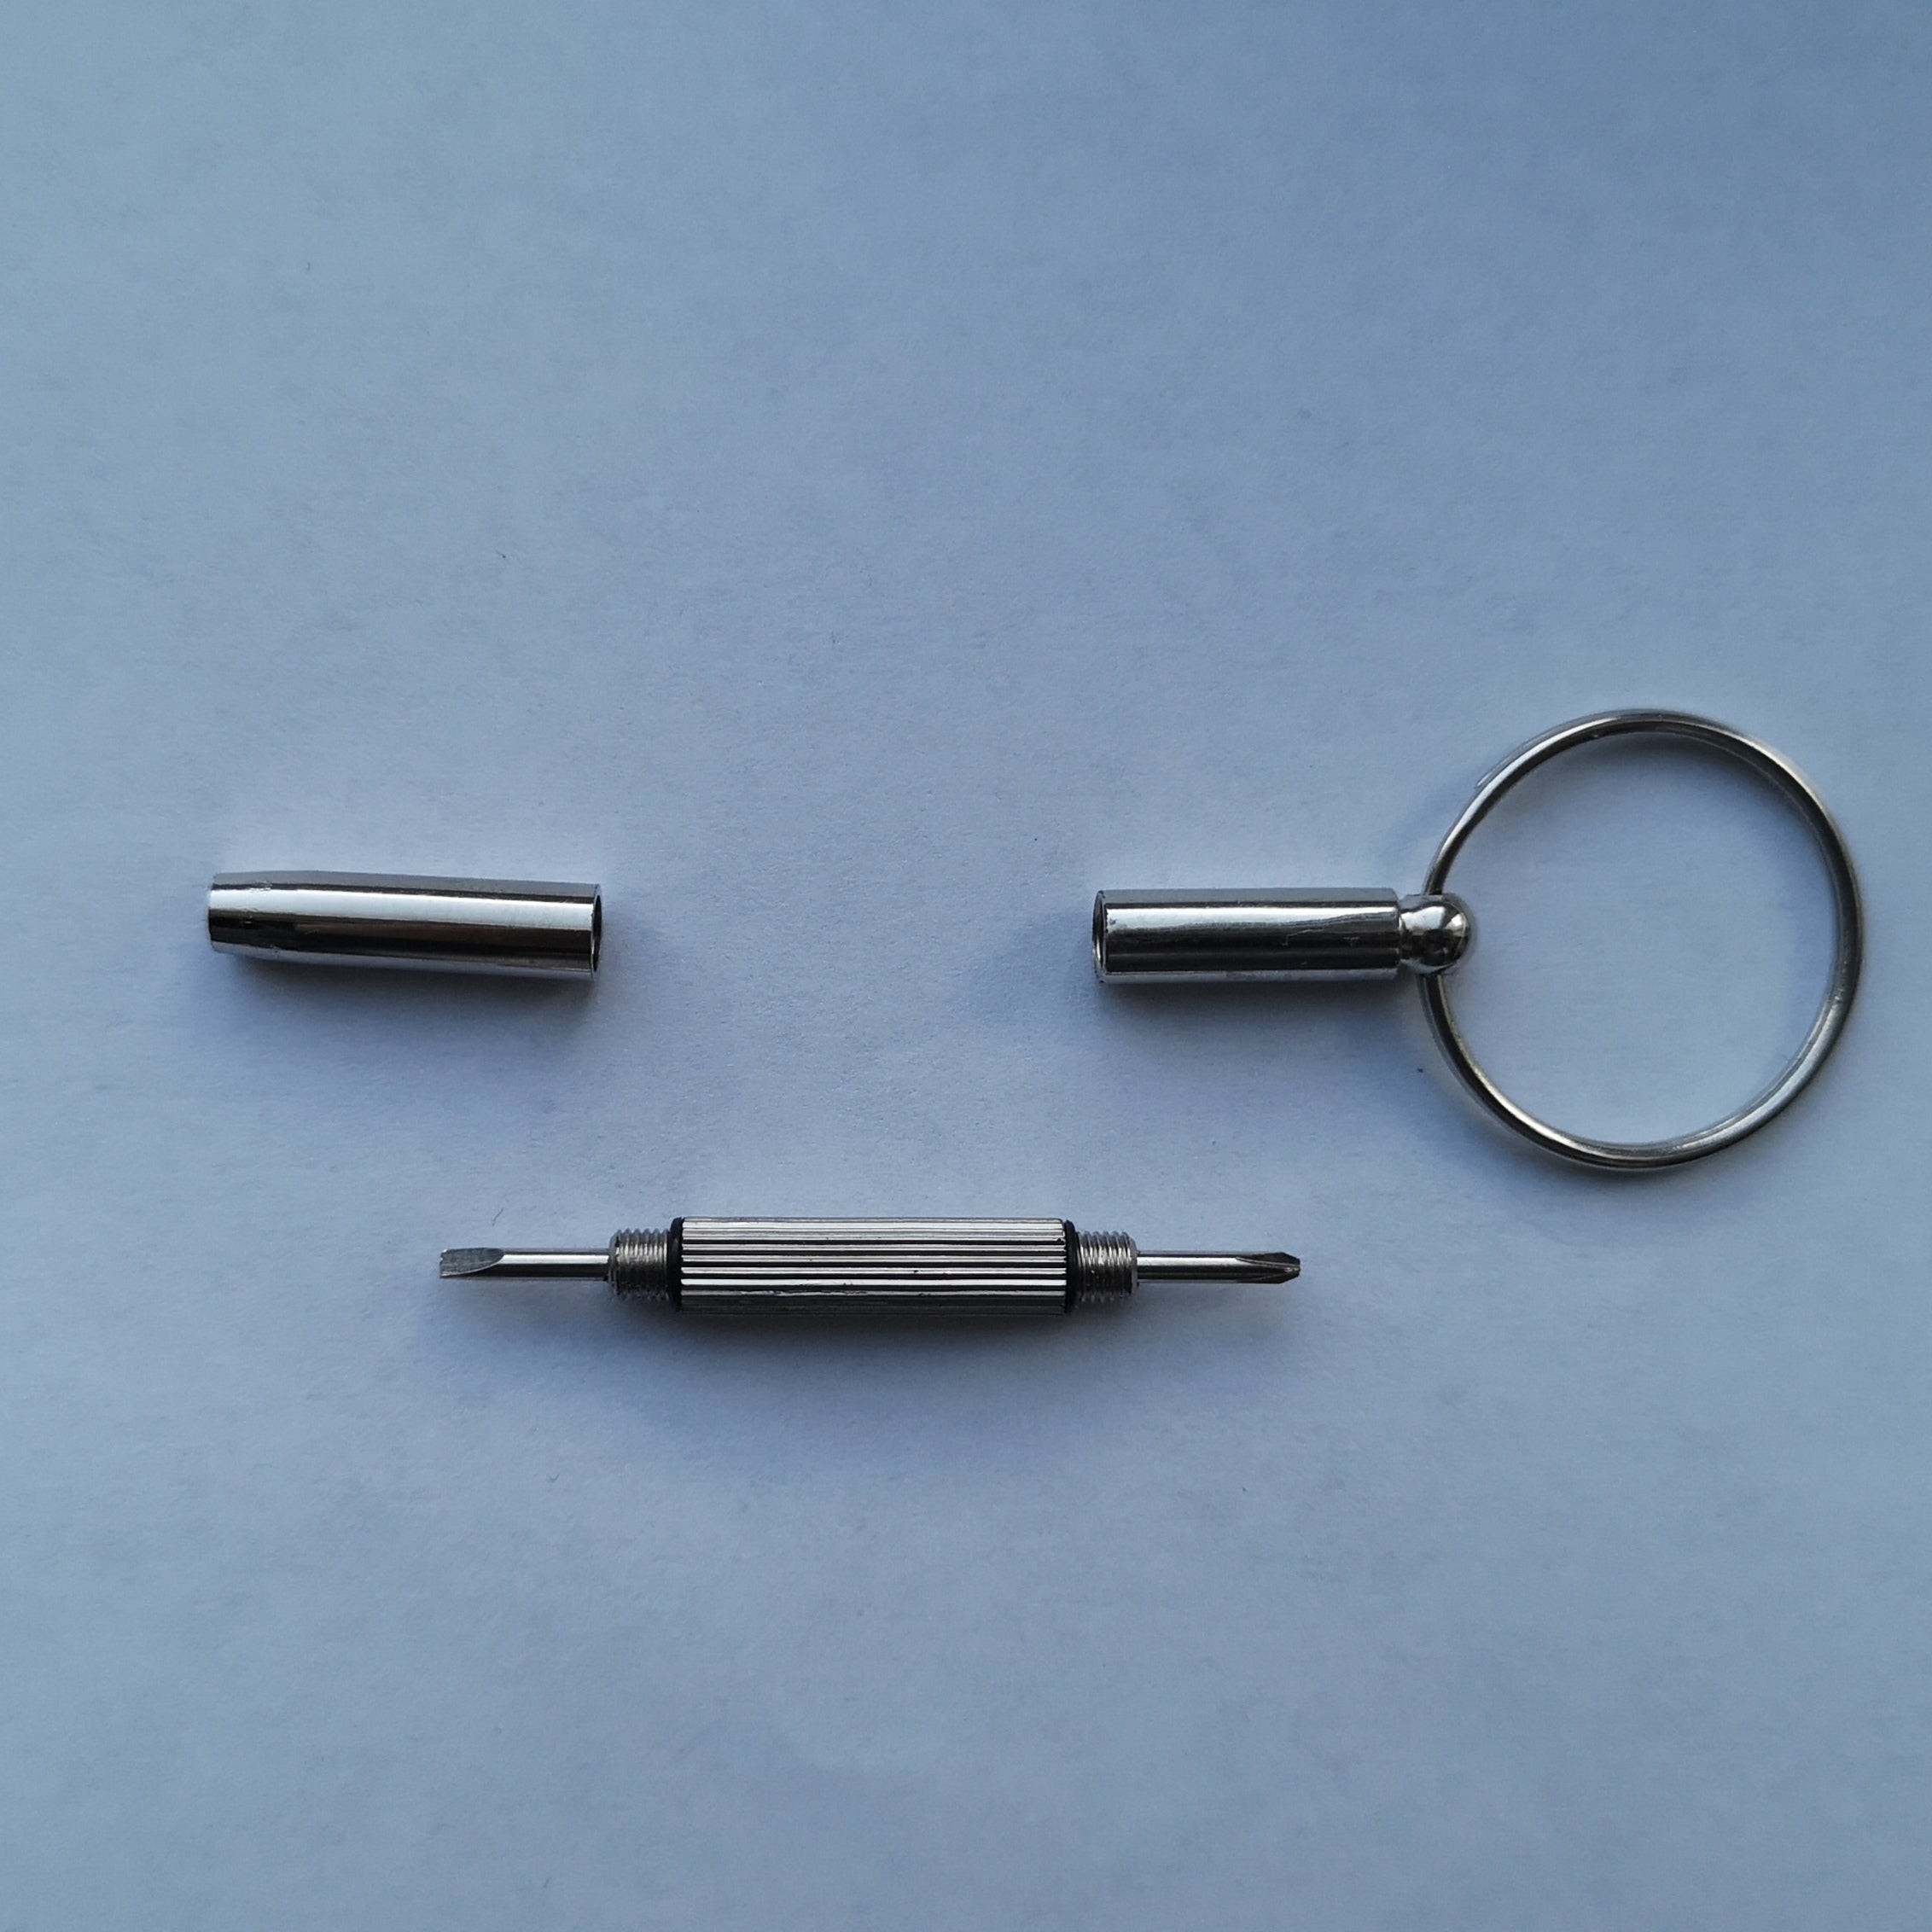 Dismantled Double head mini Screwdriver keyring phillips and flat head